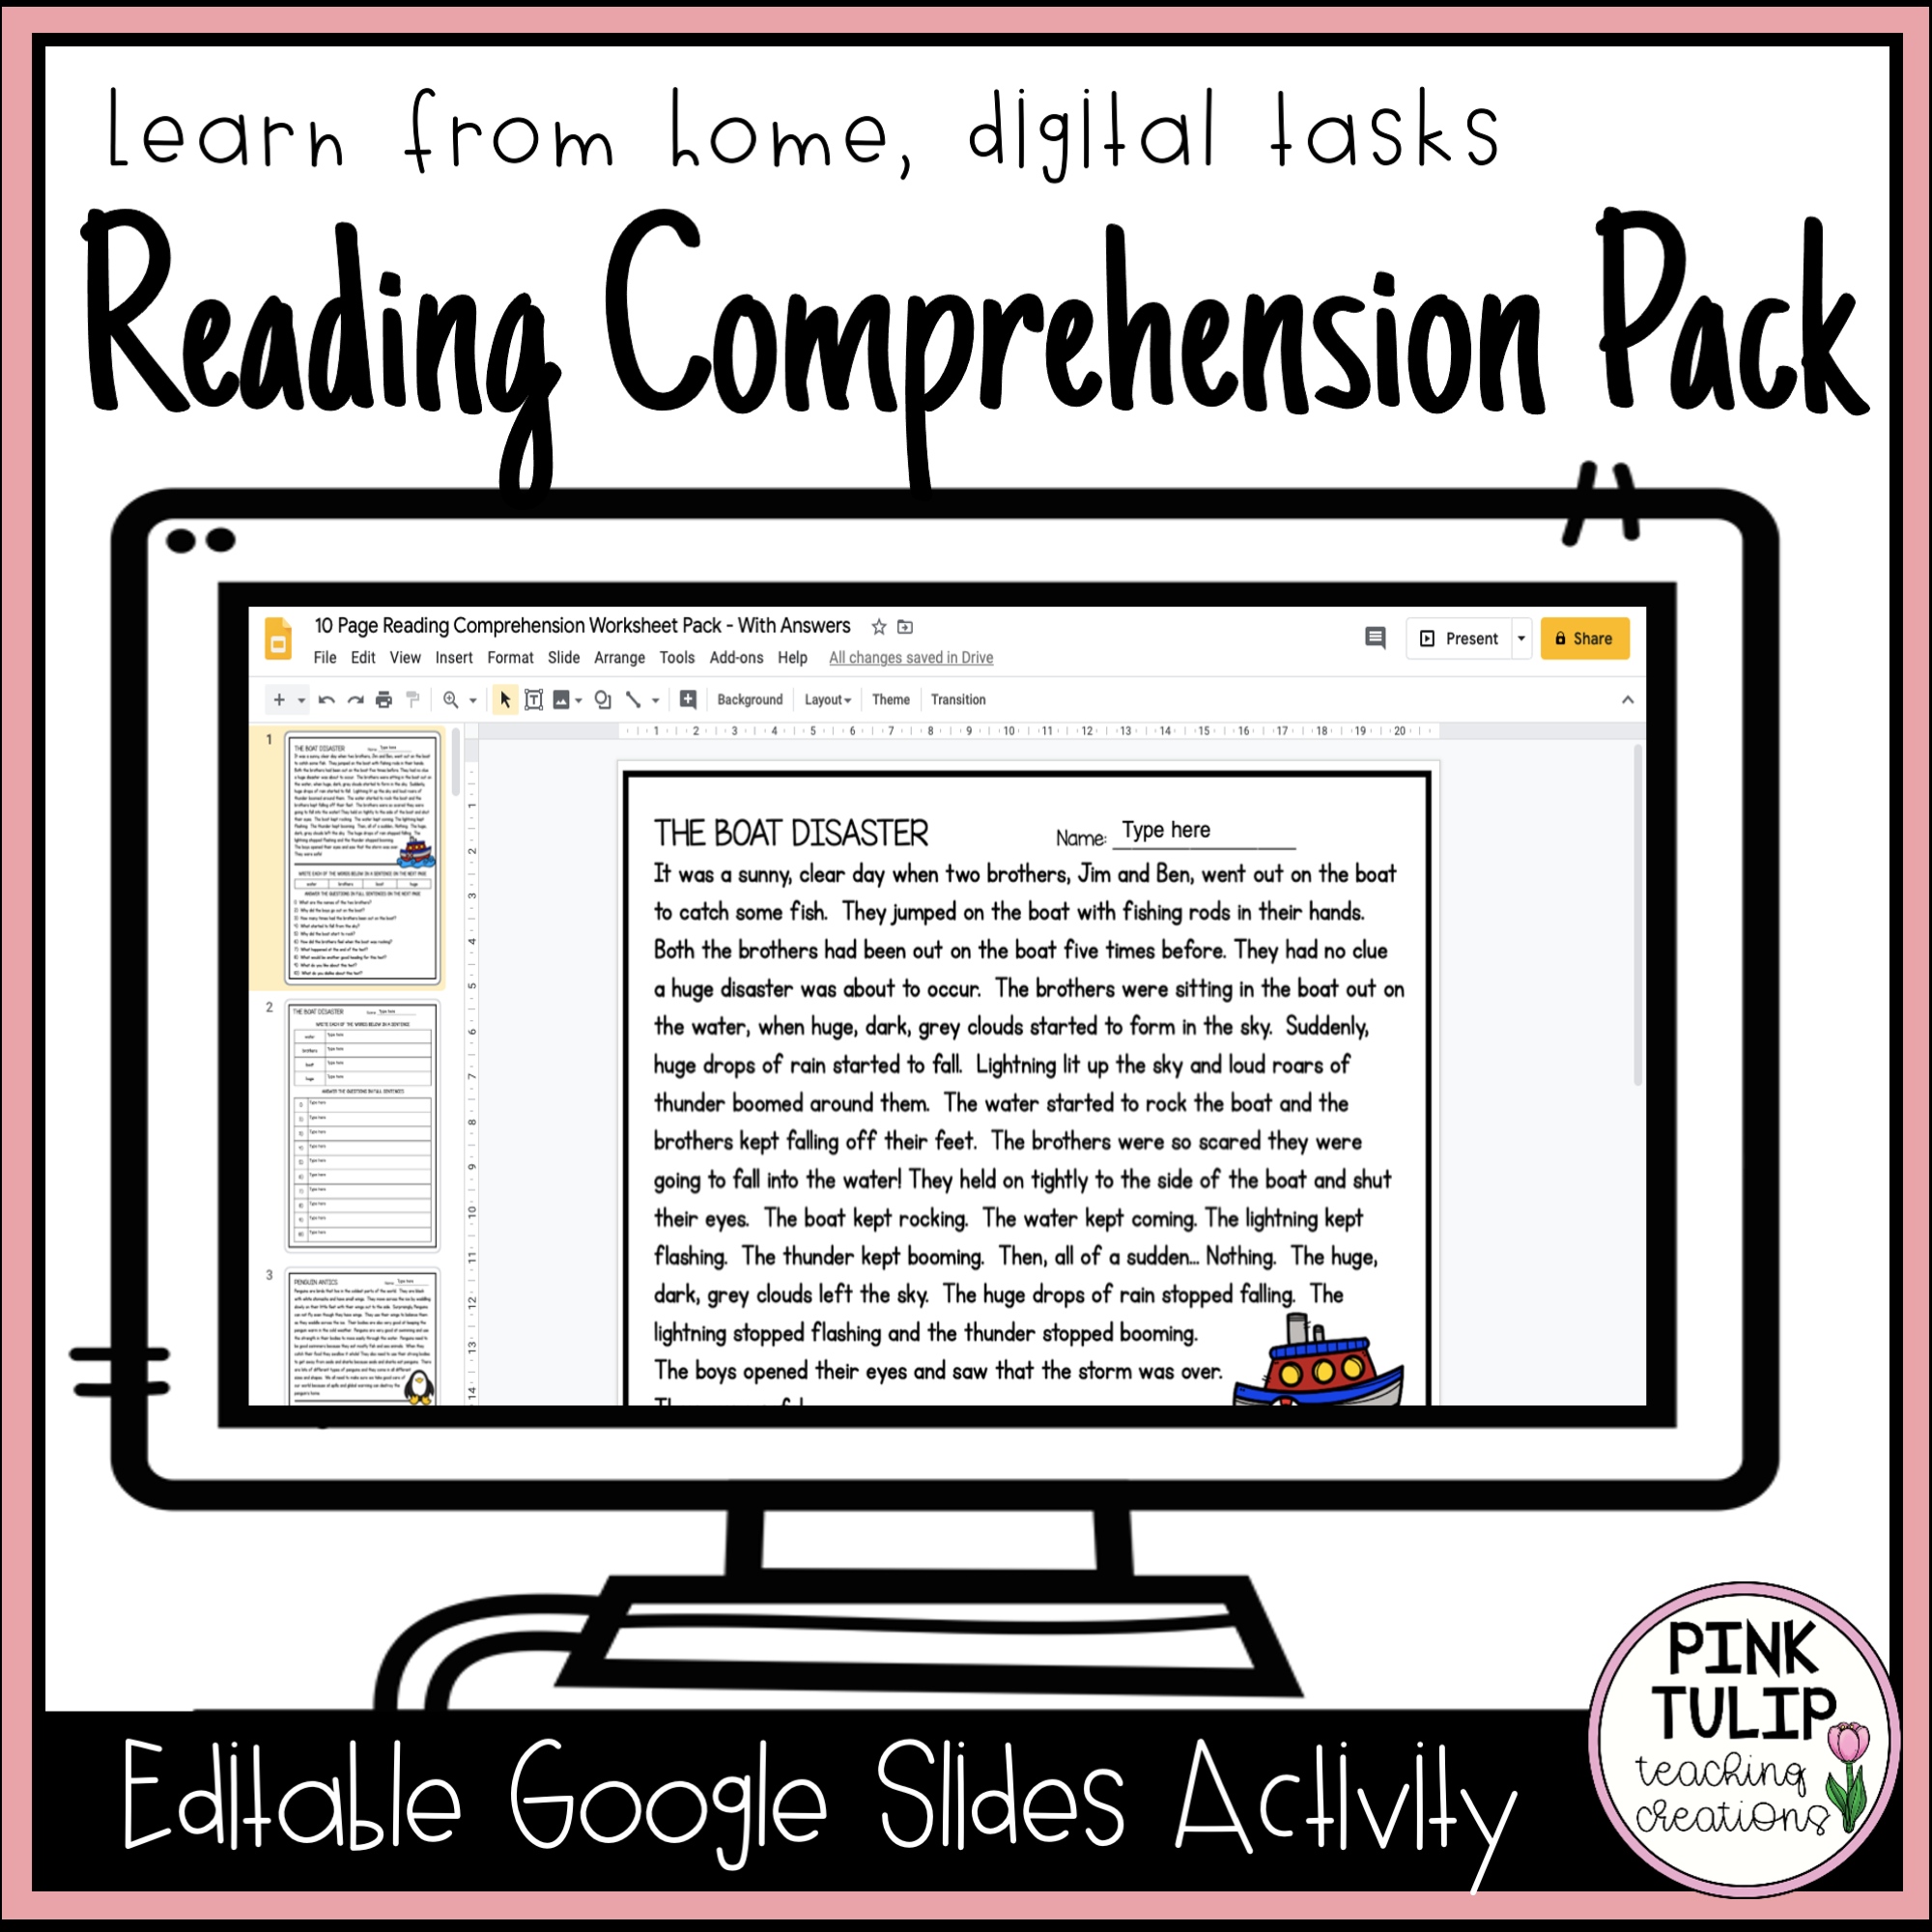 10 Page Reading Comprehension Worksheet Pack